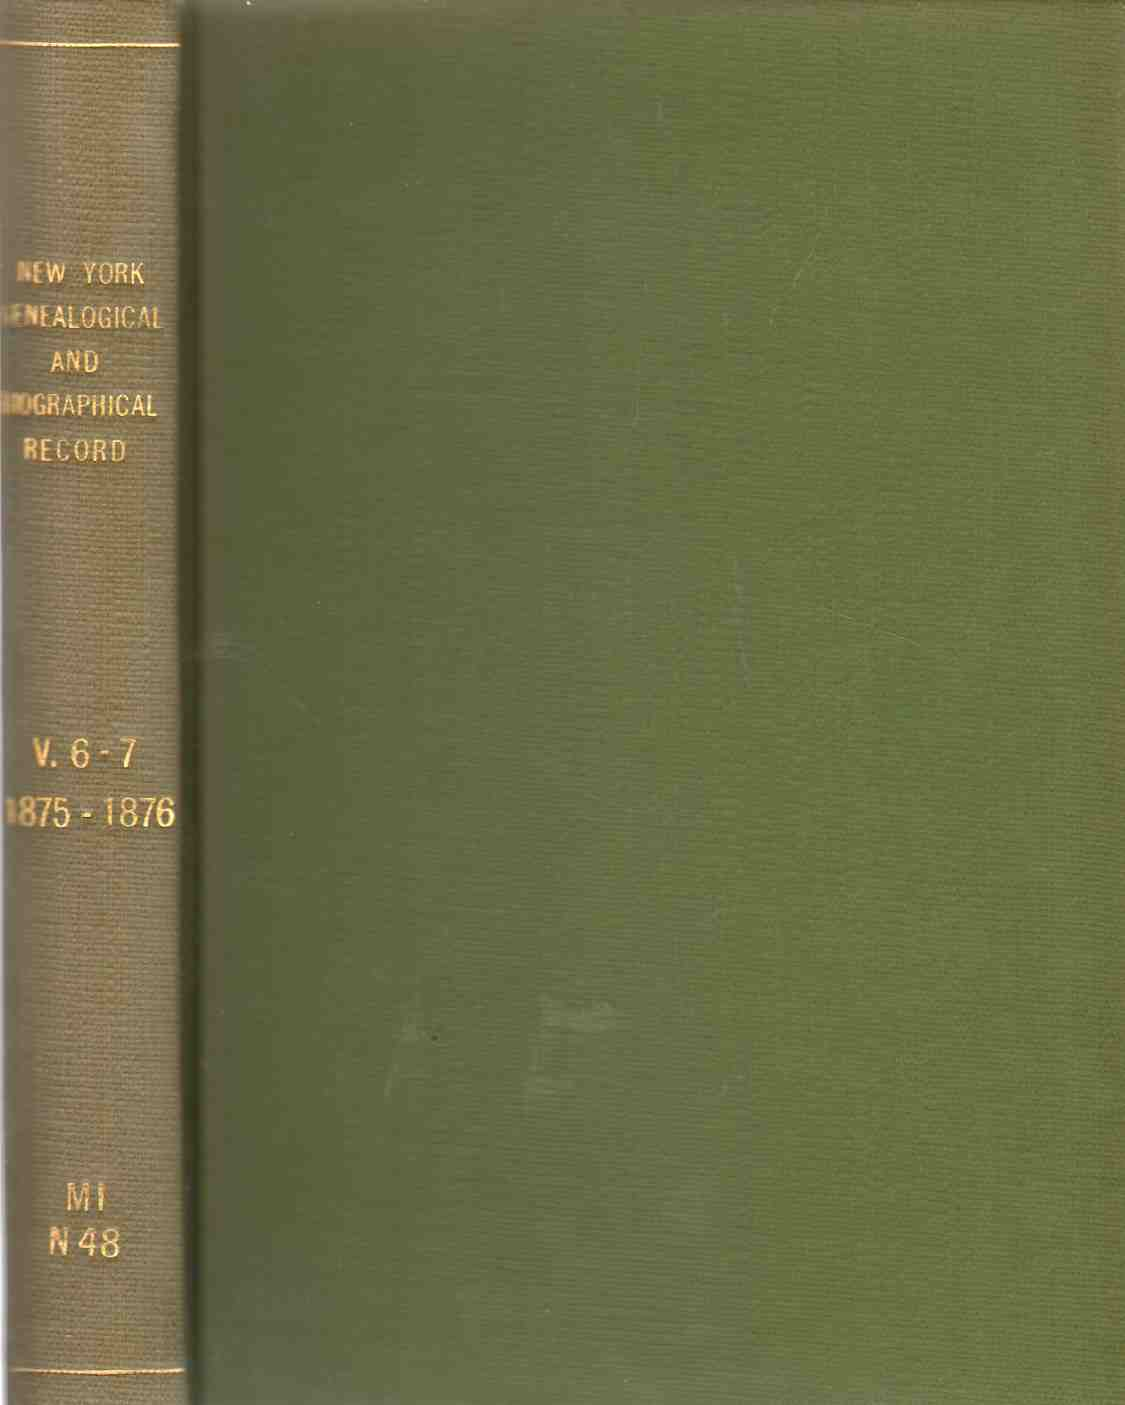 Image for NEW YORK GENEALOGICAL AND BIOGRAPHICAL RECORD Volumes VI & VII January 1875 to October 1876